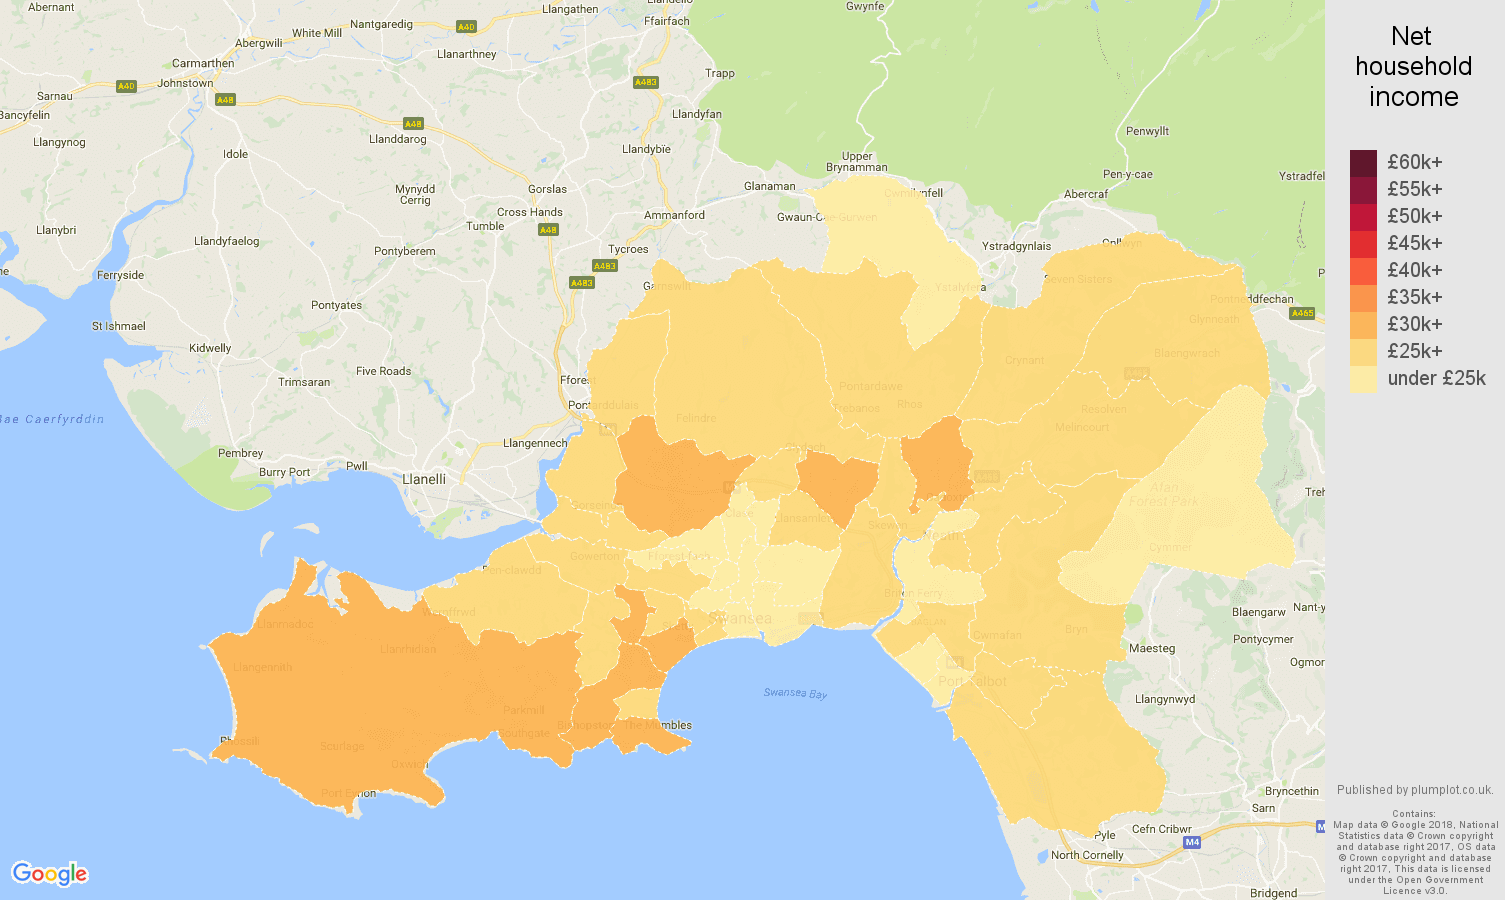 West Glamorgan net household income map